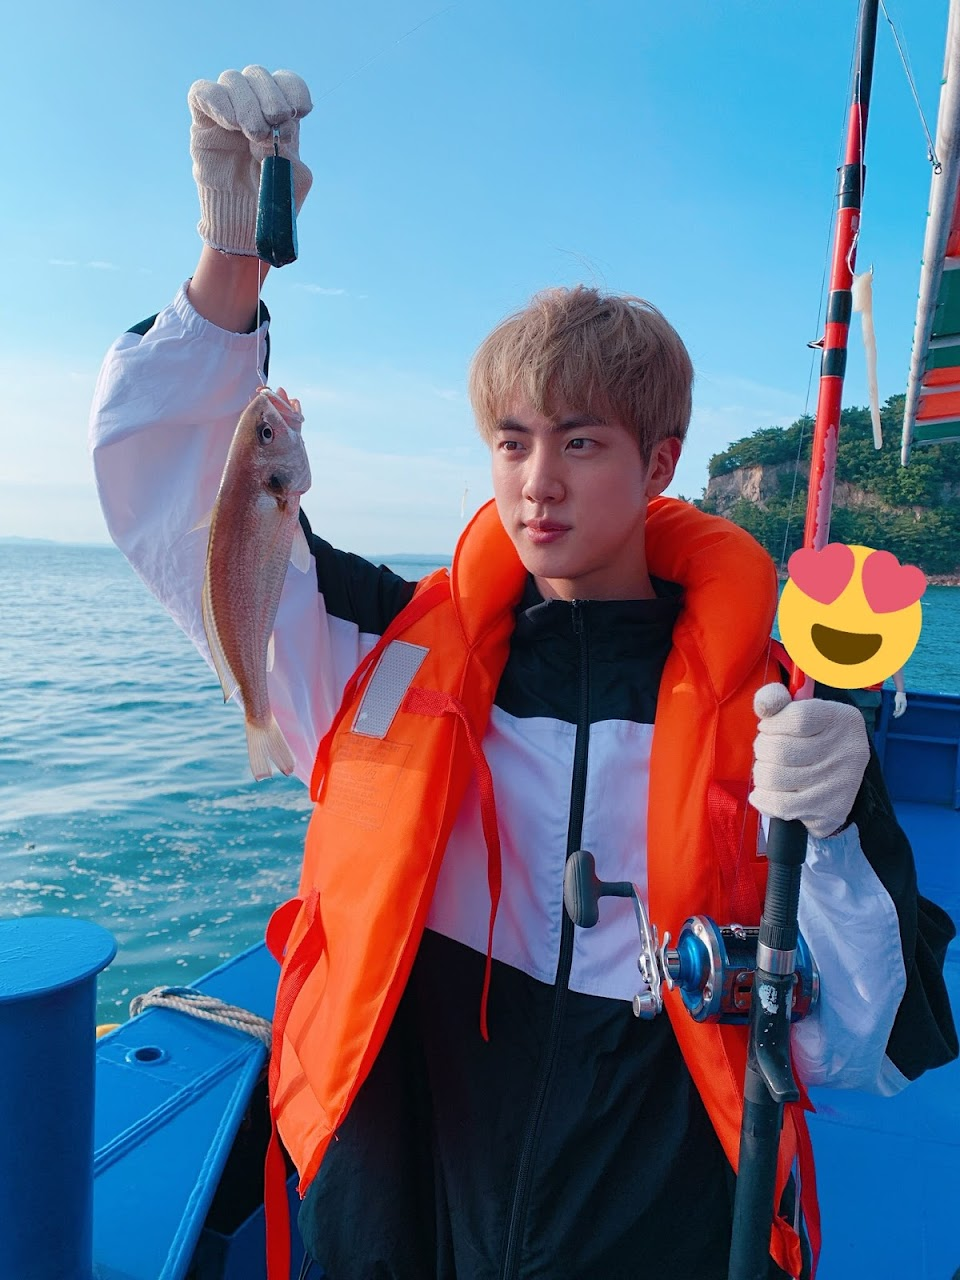 bts jin fishing2